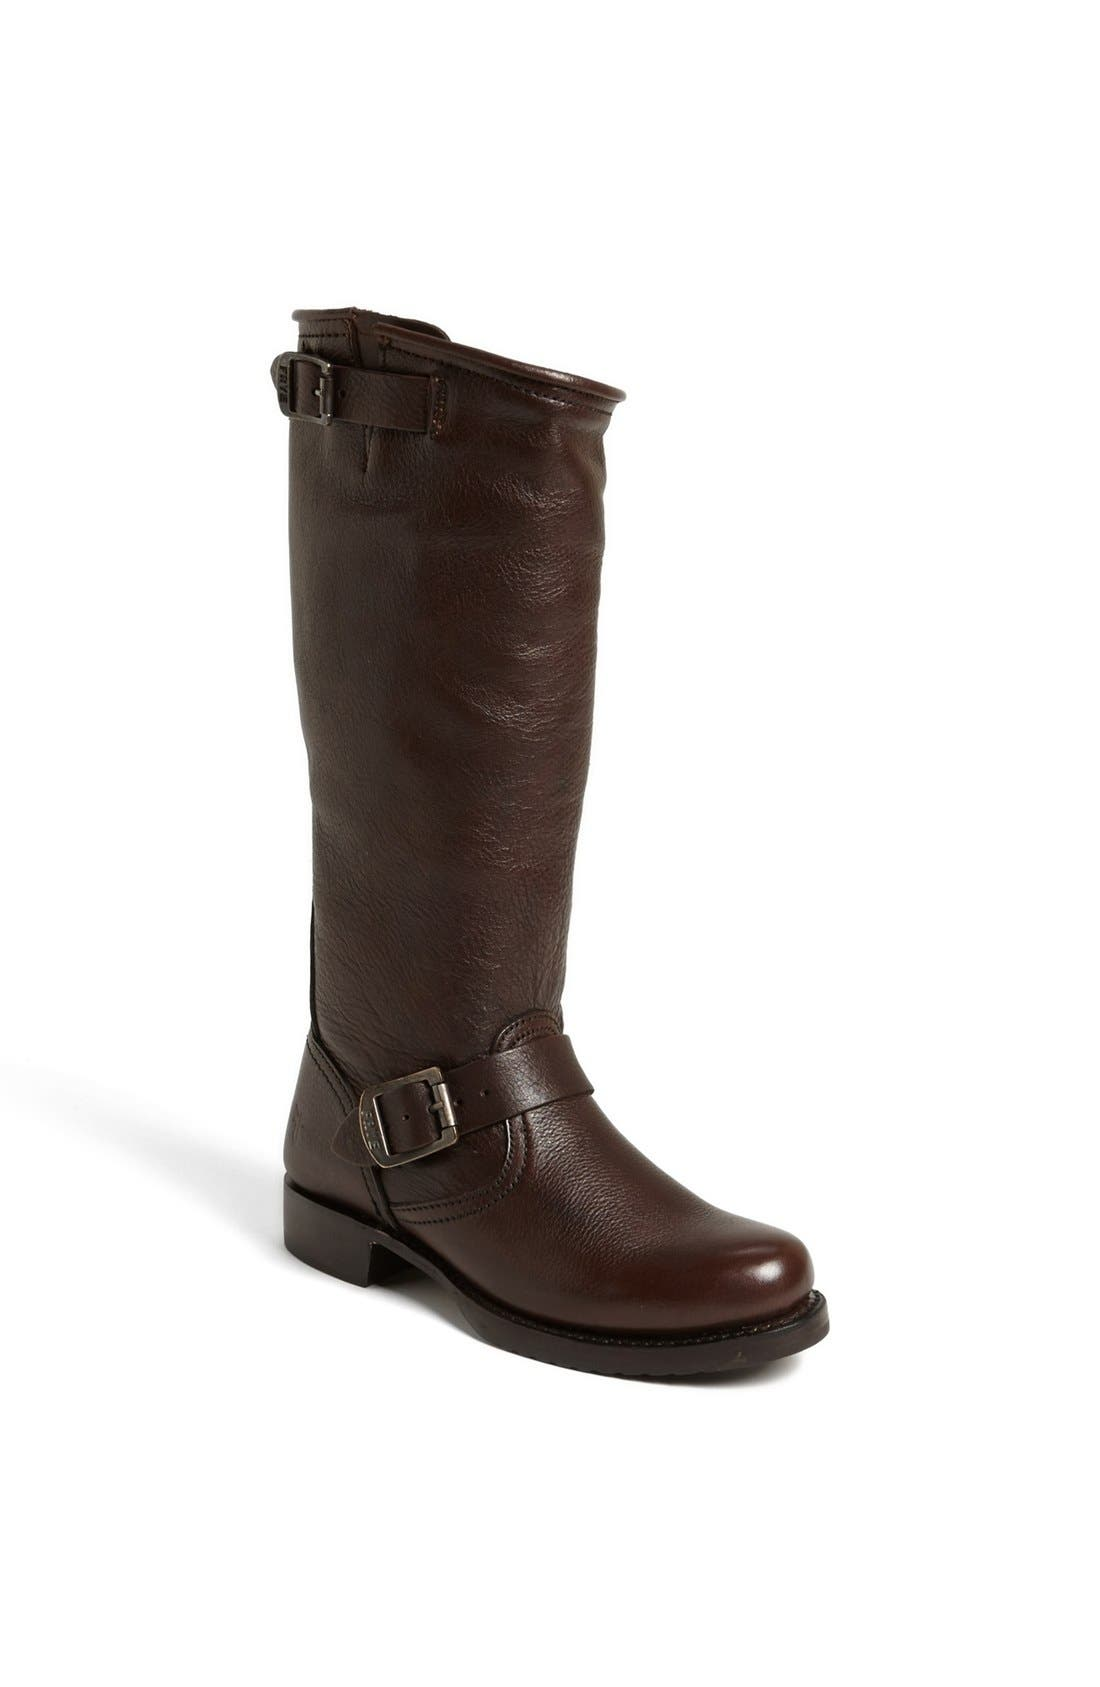 Main Image - Frye 'Veronica' Slouchy Boot